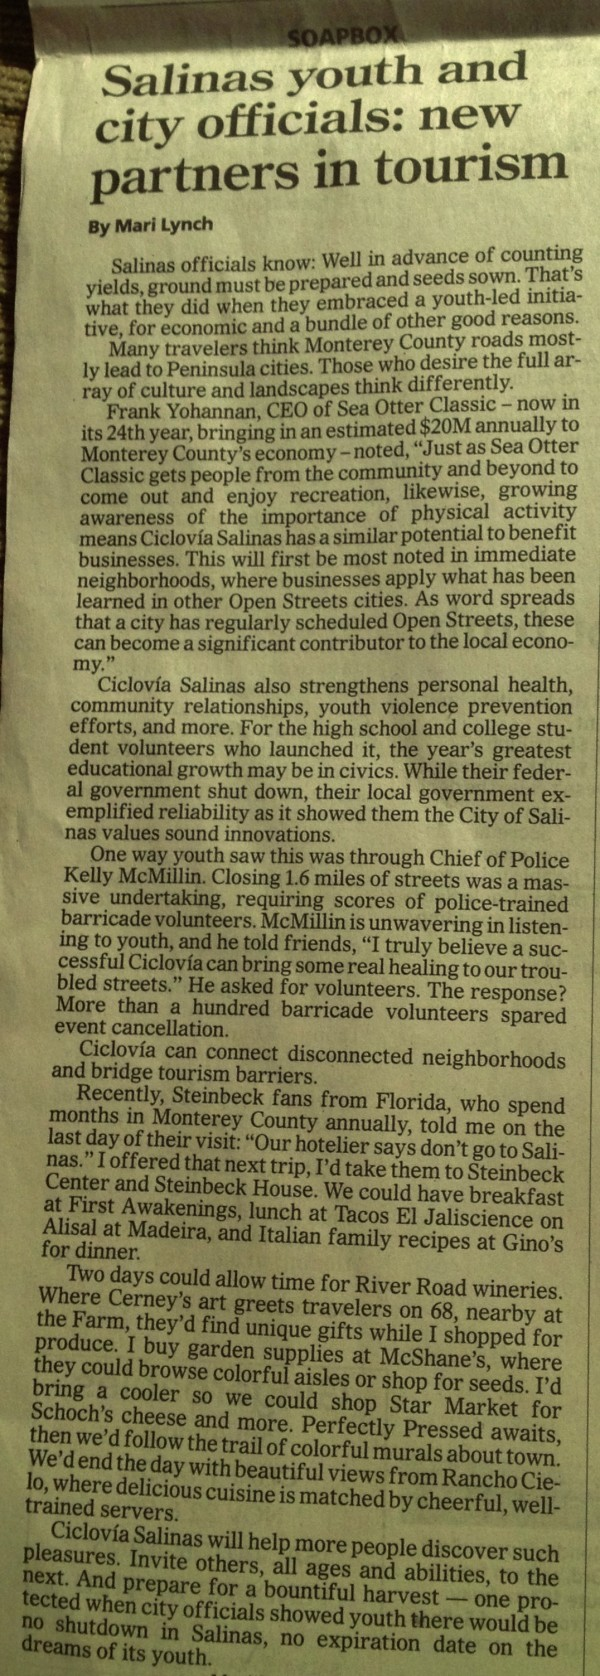 Salinas Californian 16 Oct 2013 - pg 2A - Youth and city partner for tourism - Ciclovia - by Mari Lynch